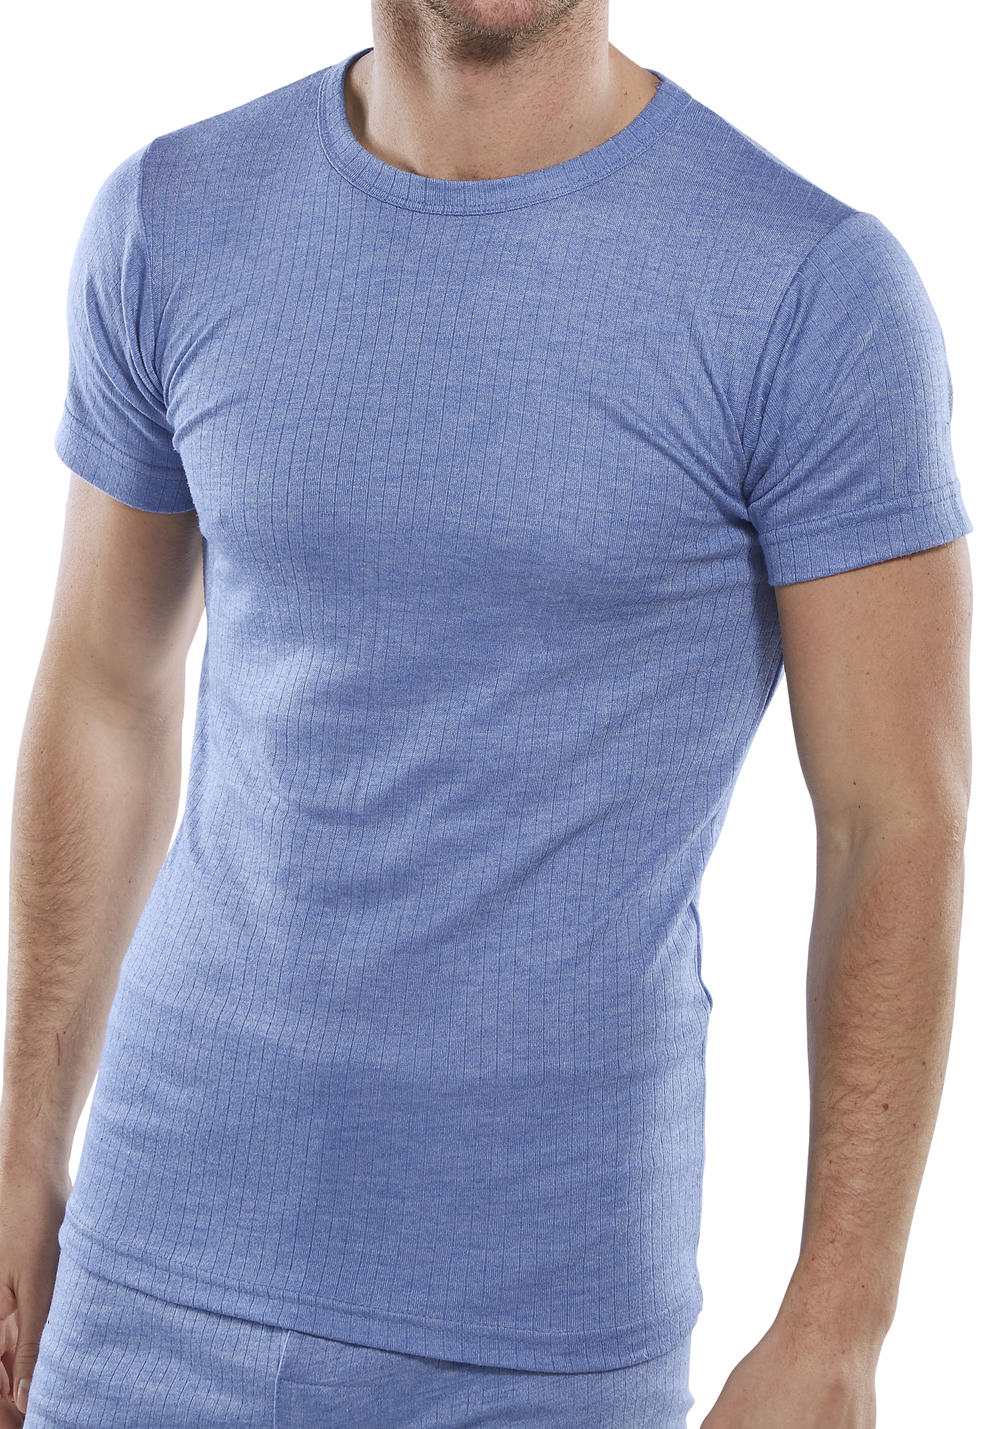 Short Sleeved Thermal vest w/ Good insulation & Lightweight breathable material